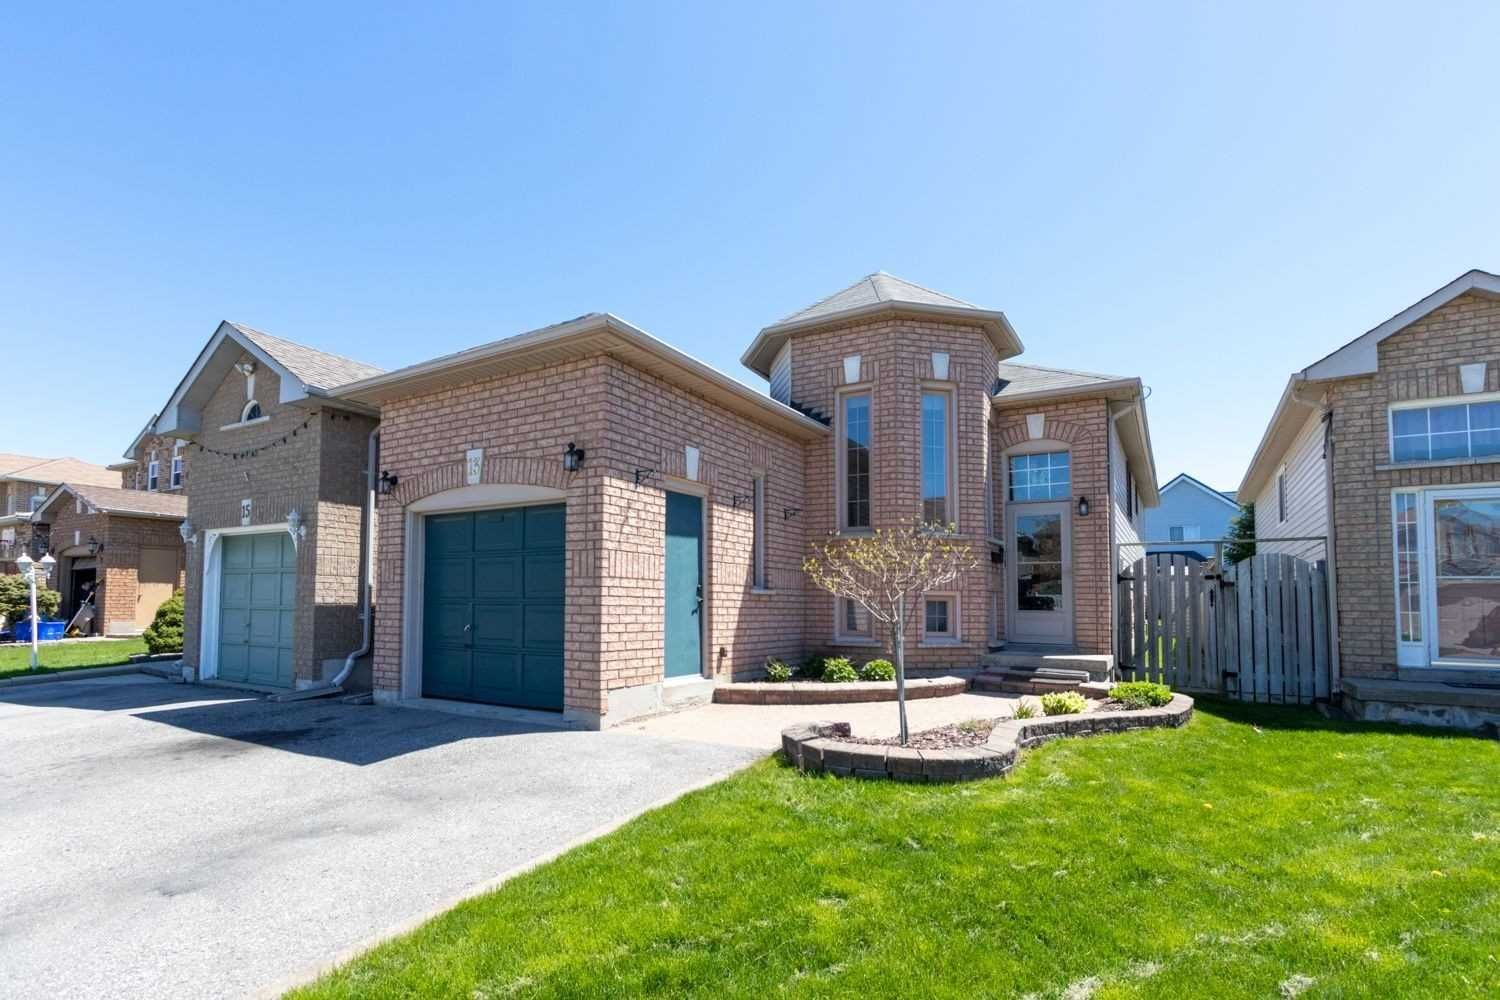 Main Photo: 13 Willey Drive in Clarington: Bowmanville House (Bungalow-Raised) for sale : MLS®# E5234666